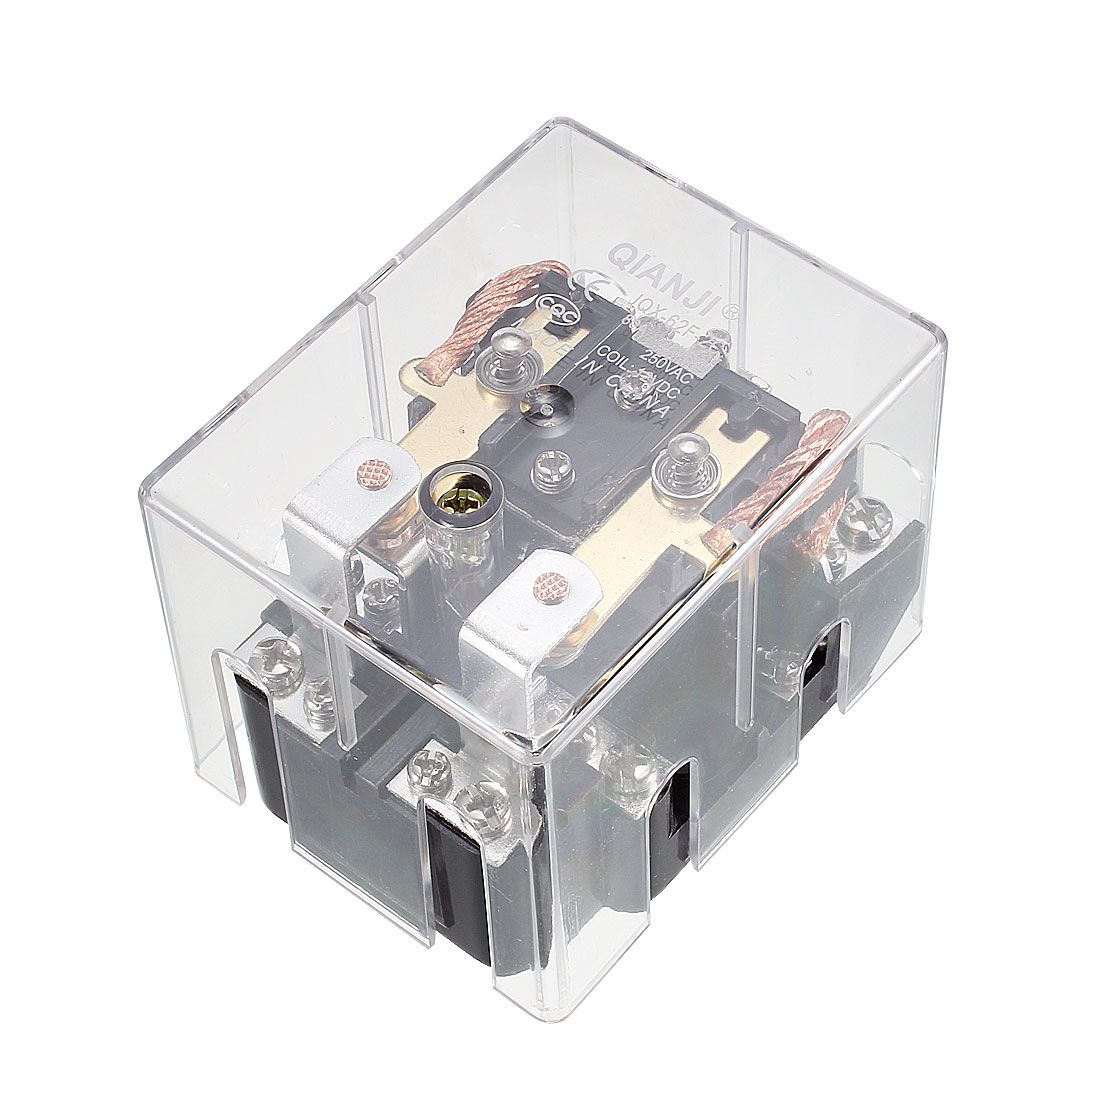 JQX-62F-2Z Coil Voltage DC 12V 80A DPDT Electronmagnetic Relay